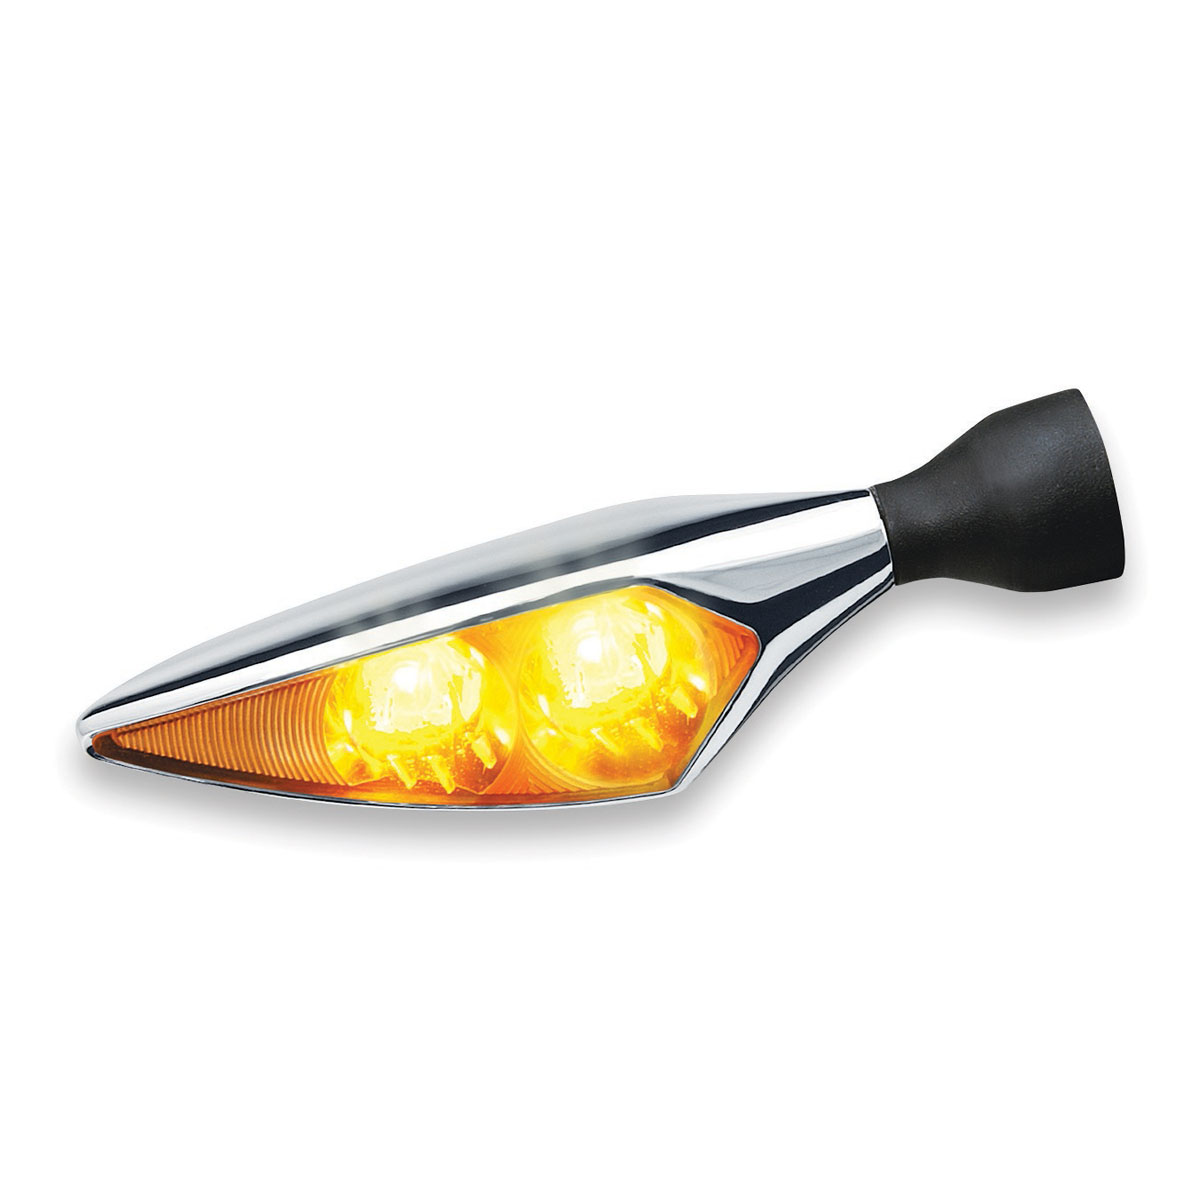 Kuryakyn by Kellermann micro Rhombus Extreme Chrome Amber Front Left/Rear Right Turn Signal